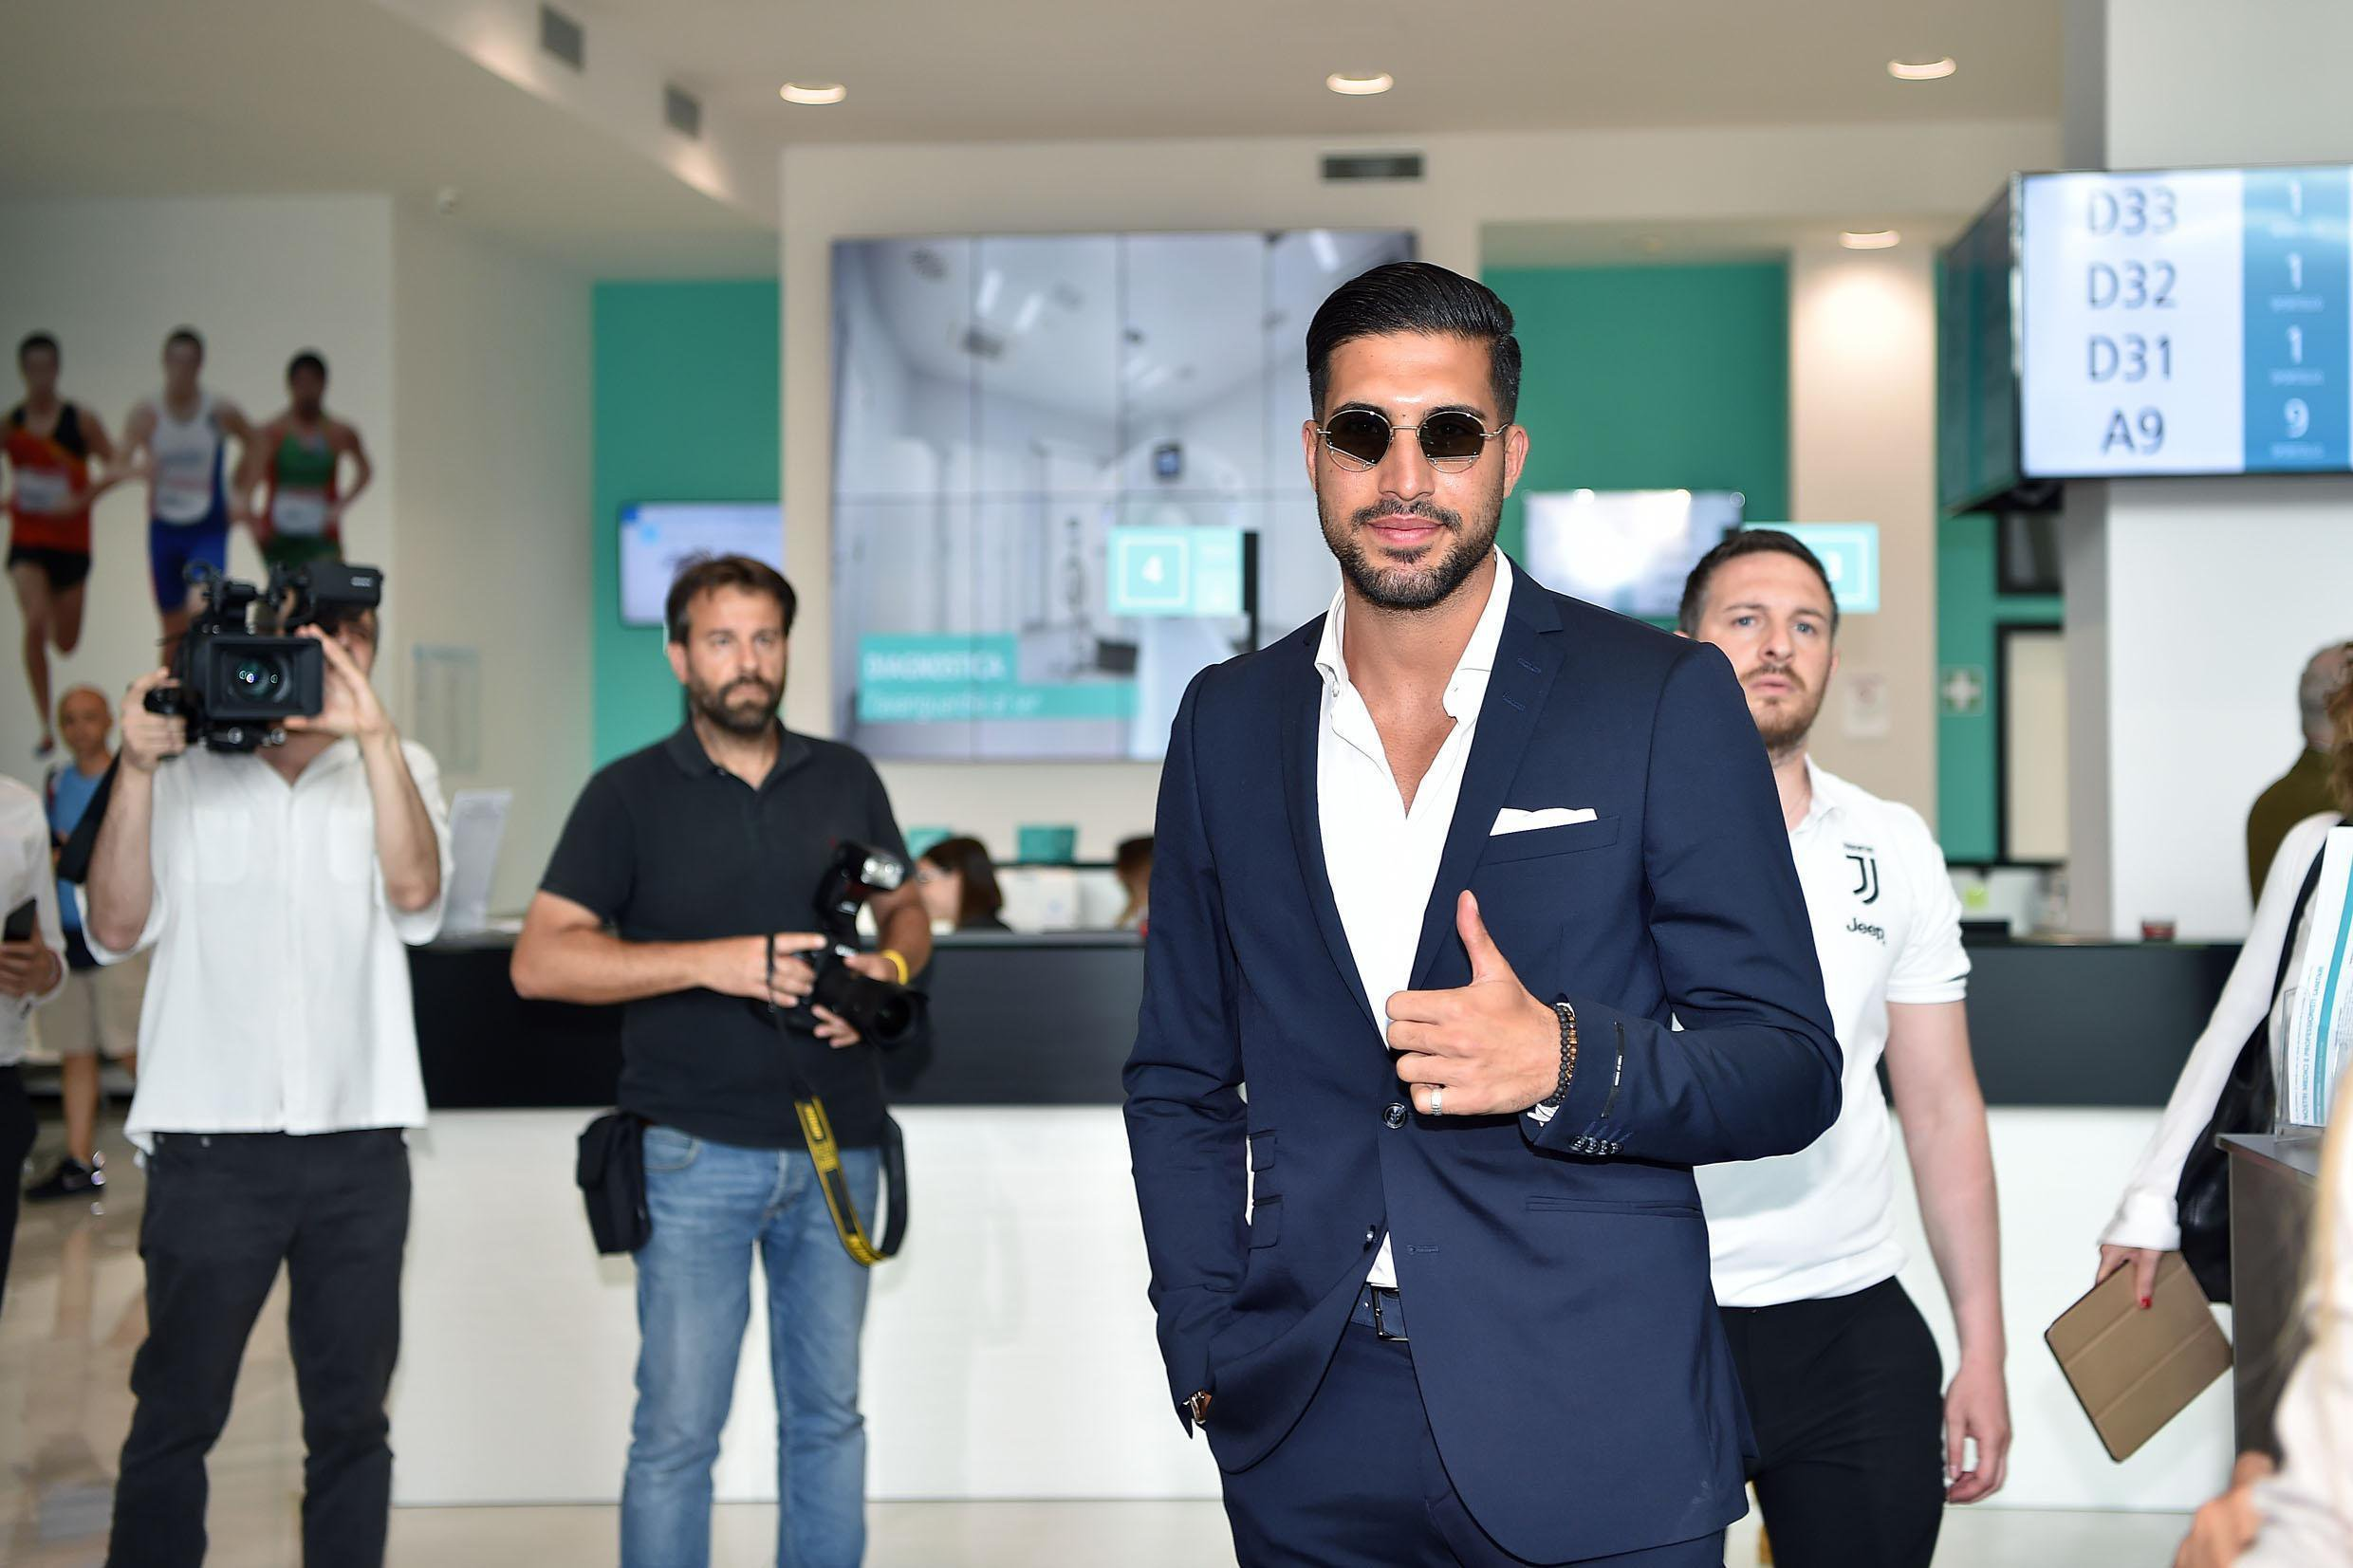 German player Emre Can, newly acquired Juventus midfielder, arrives at the Juventus medical center to undergo medical tests in Turin, Italy, Thursday, June 21 2018. (Alessandro Di Marco/ANSA via AP)